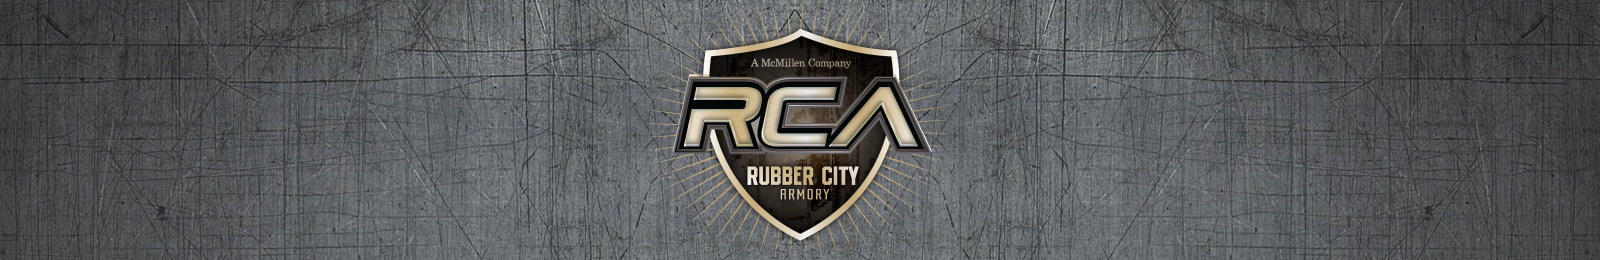 rubber-city-armory-banner.jpg